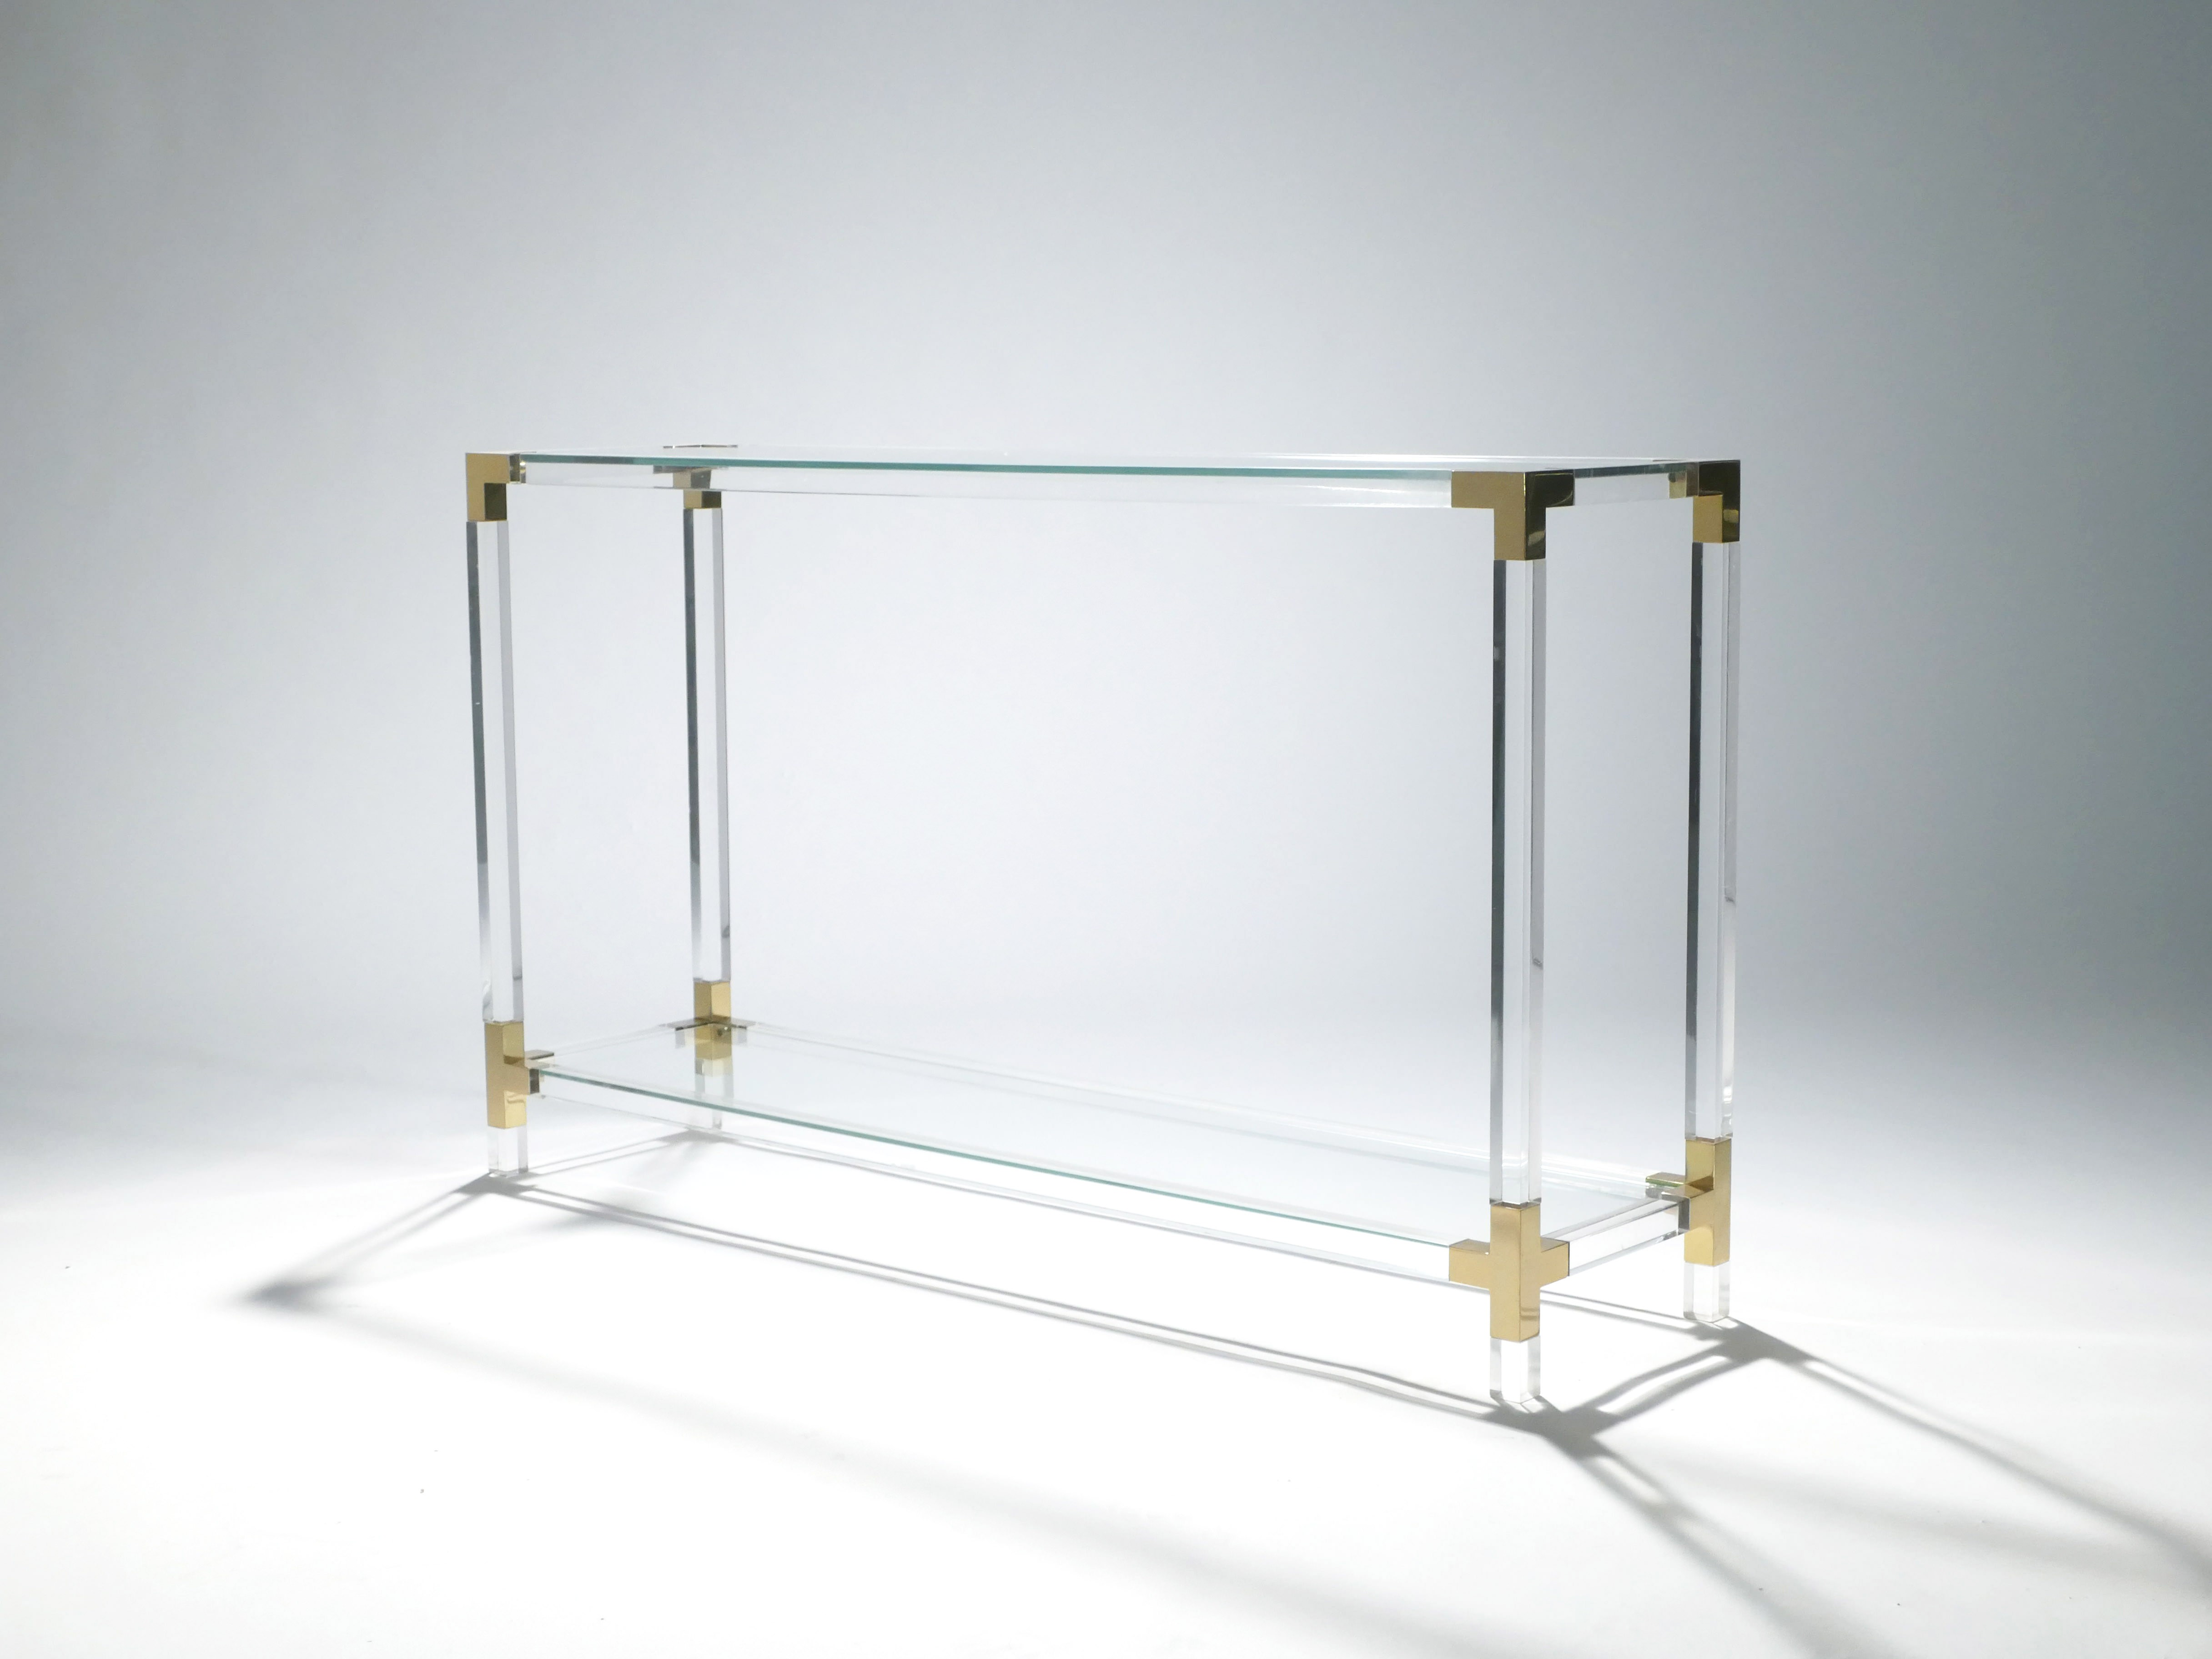 Console in br and plexigl by House Jansen - 1970s - Design Market on